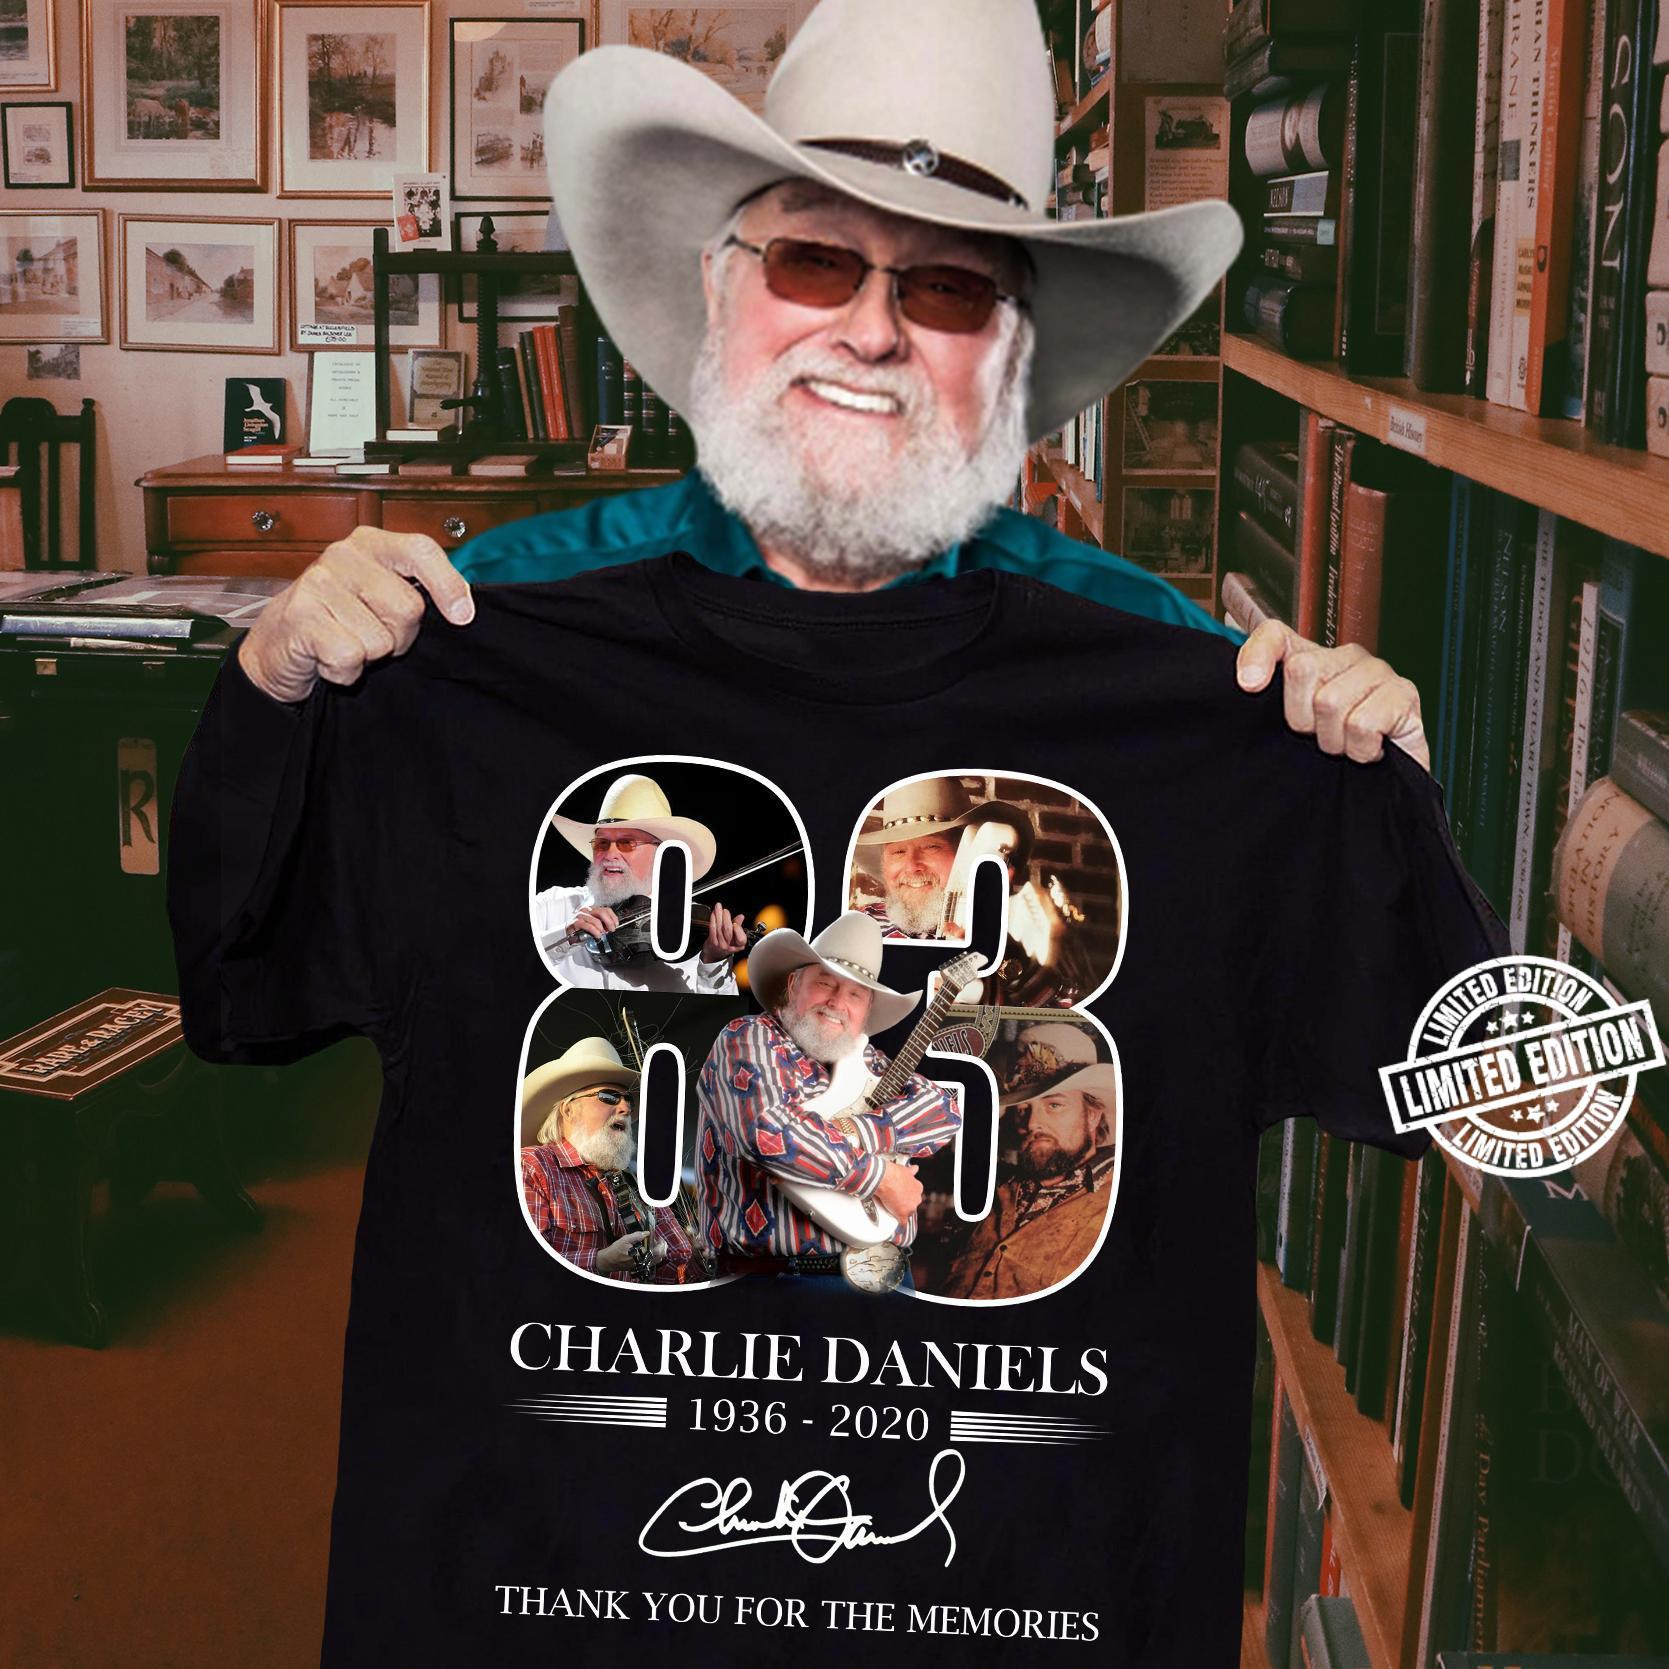 Charlie daniels 1936-2020 thank you for the memories shirt